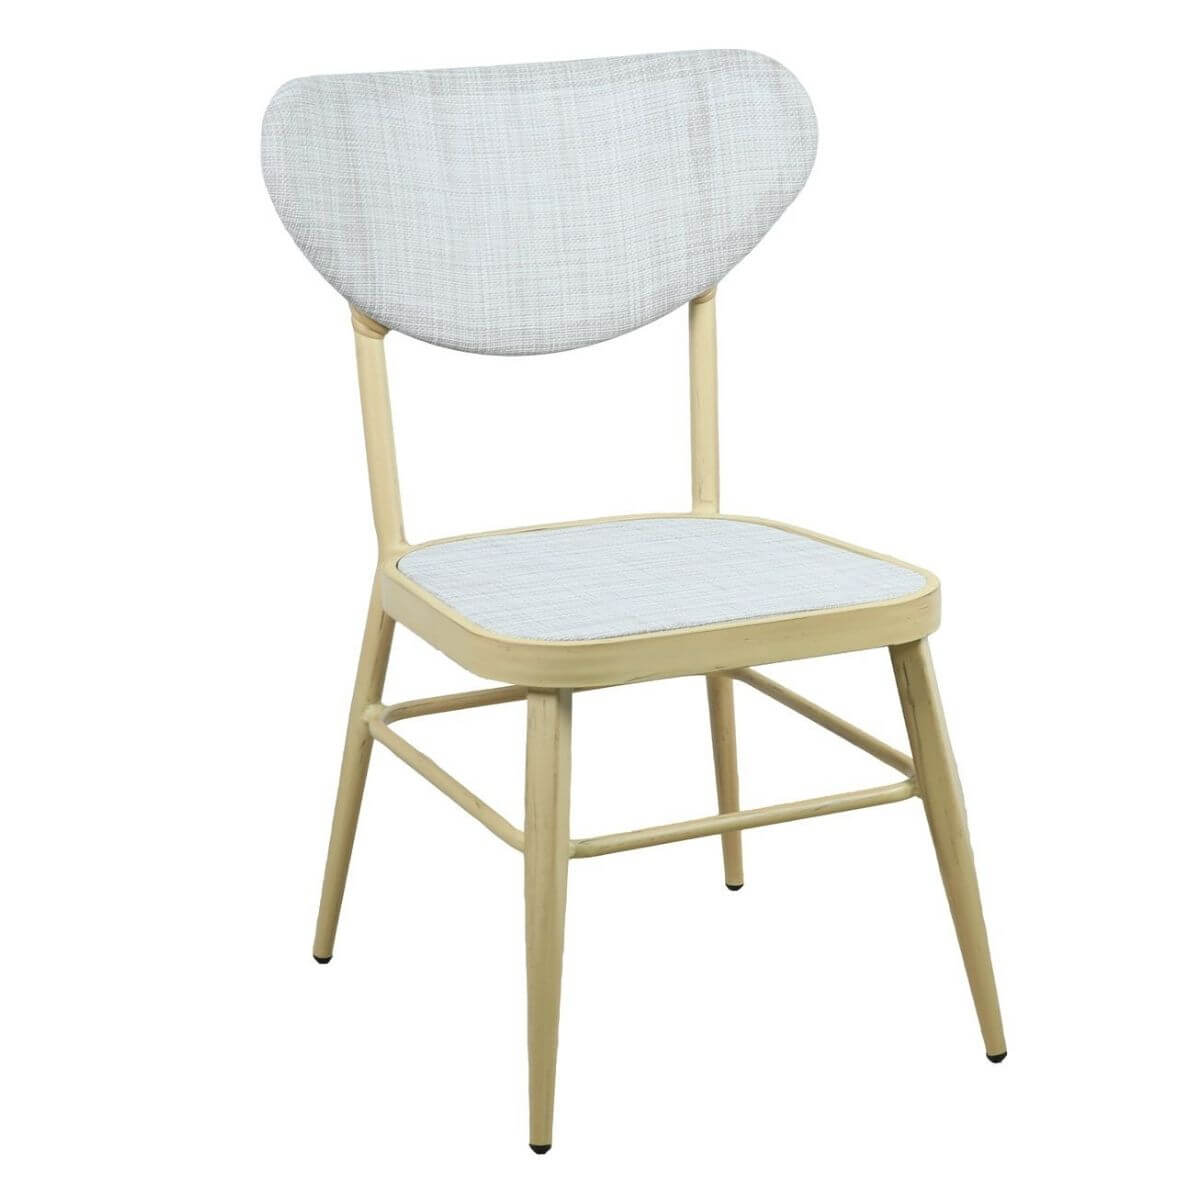 Sammy Modern Retro Natural White Outdoor Dining Chair Set of 2